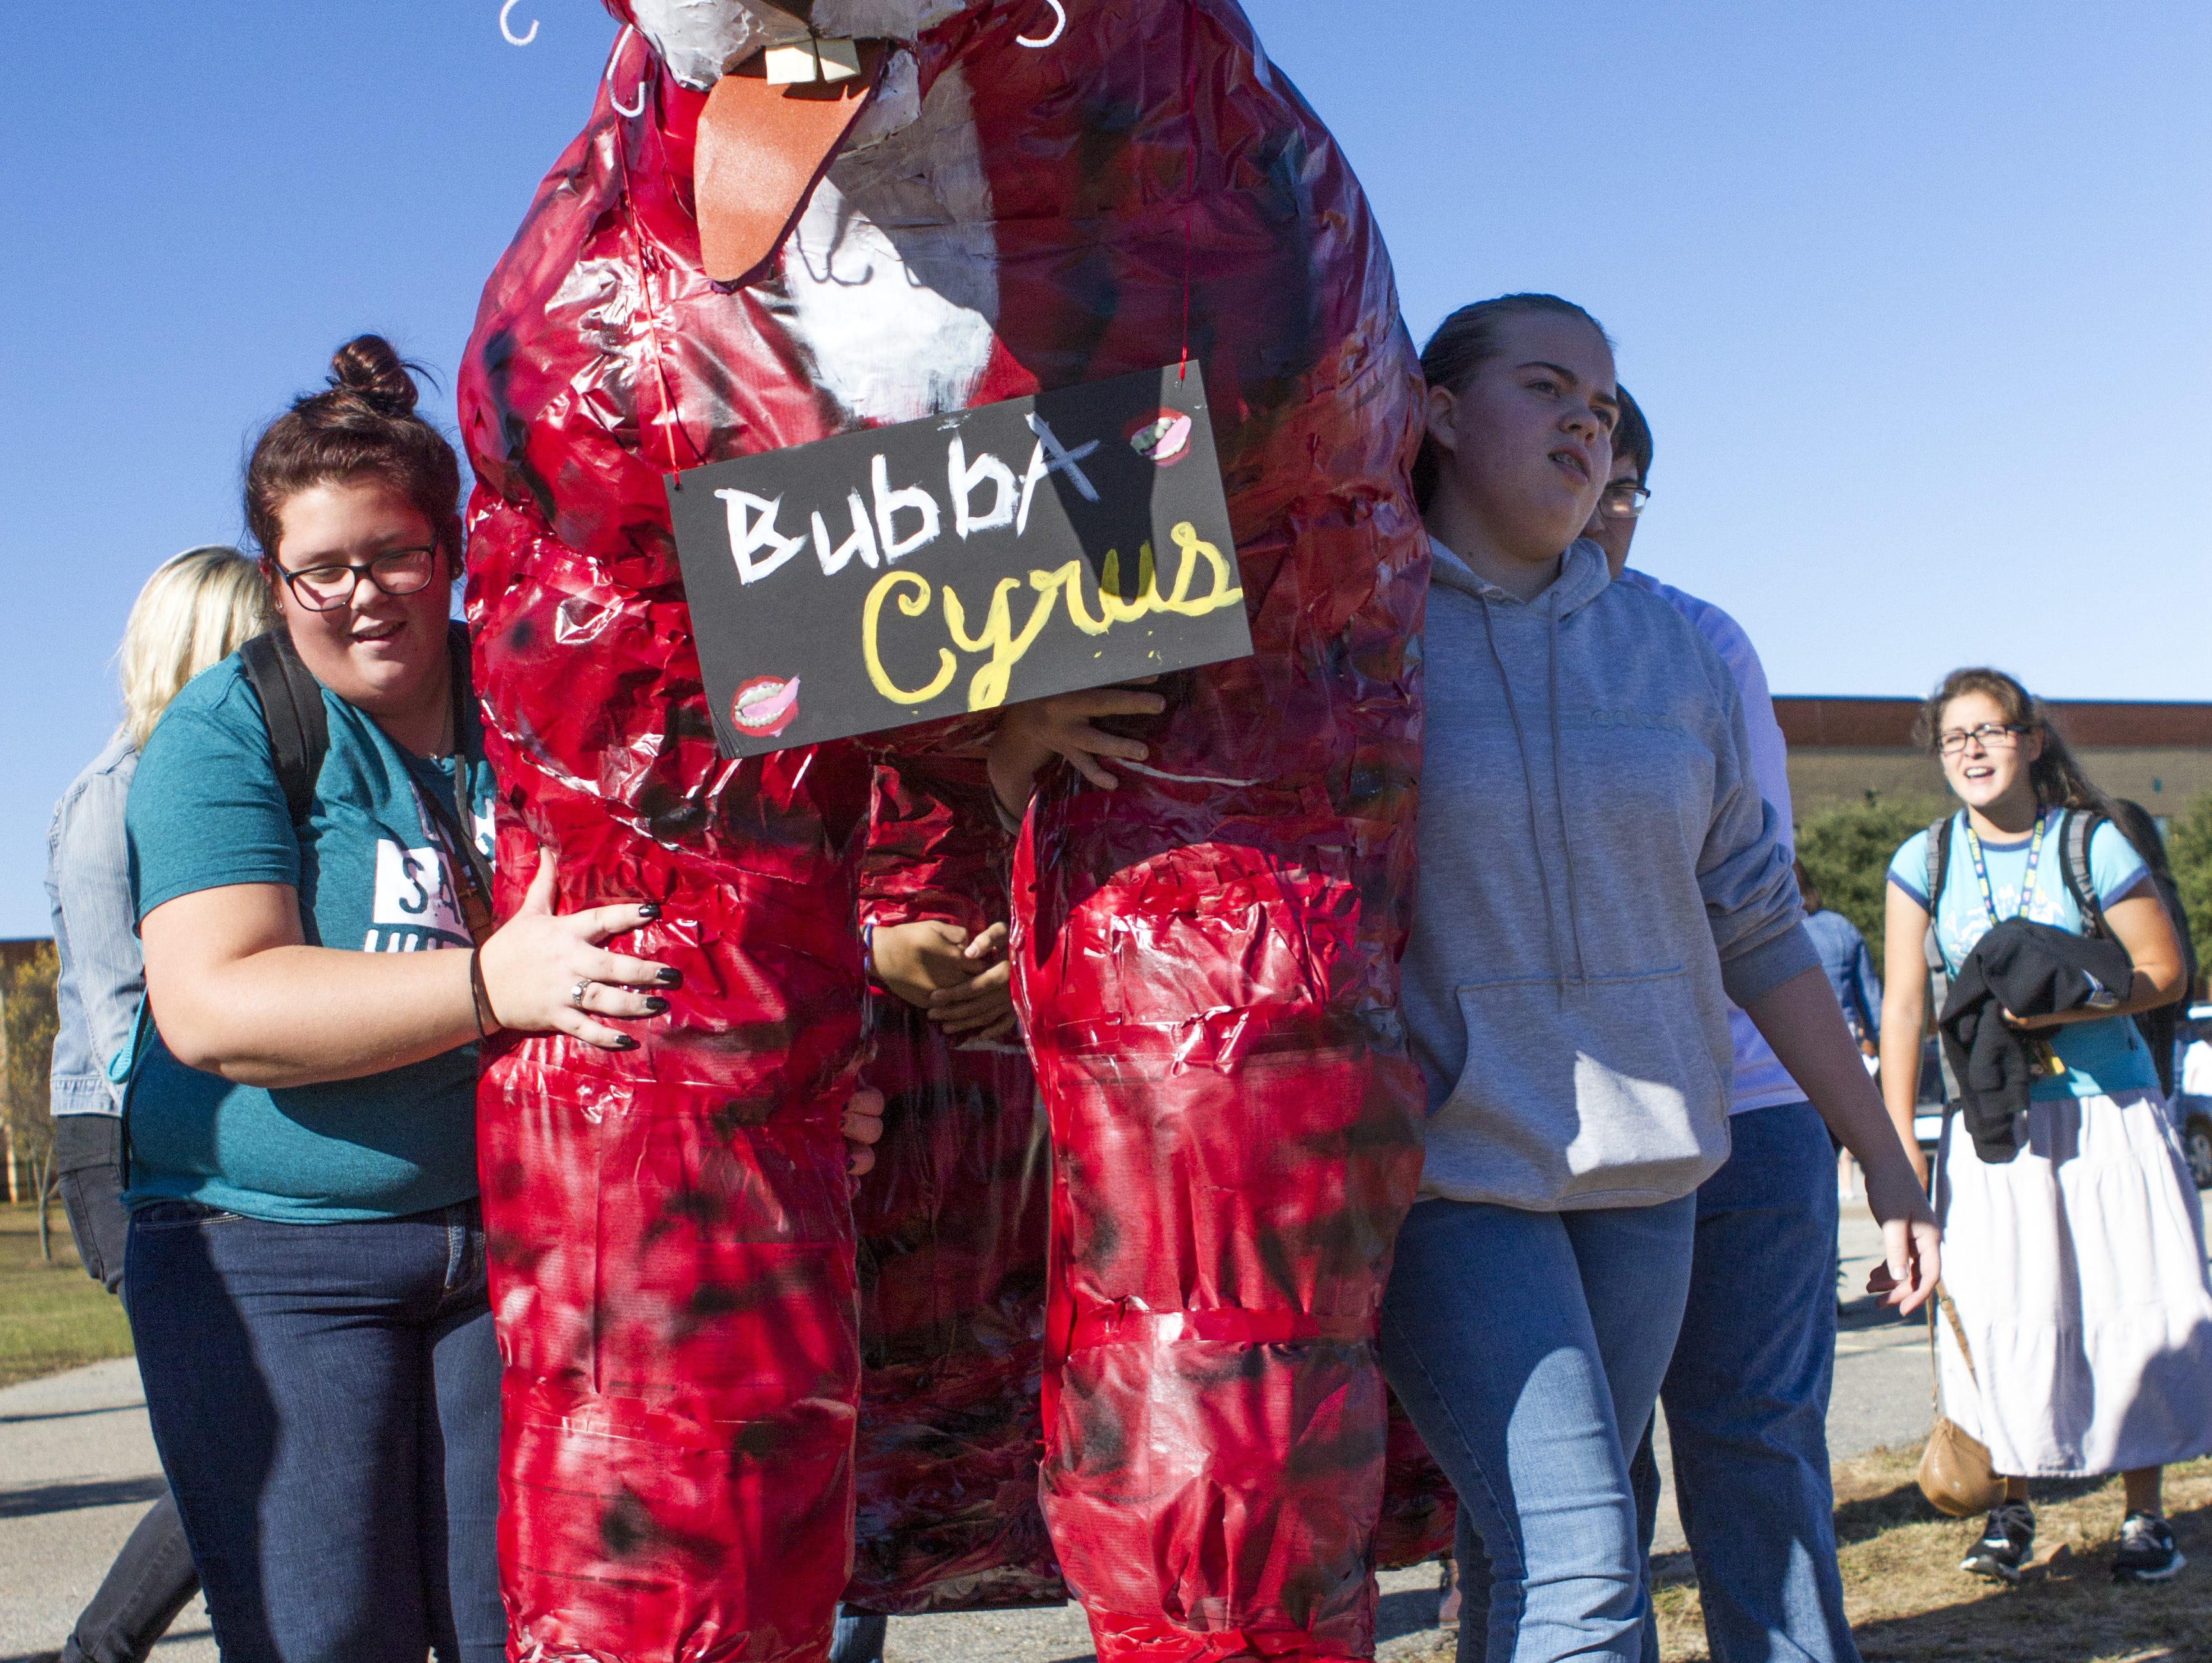 Greer High School art students pack Bubba Cyrus, their Tiger project, toward his final resting place. Cyrus will be burned following the school's pep rally leading to their rivalry game against Blue Ridge High School.